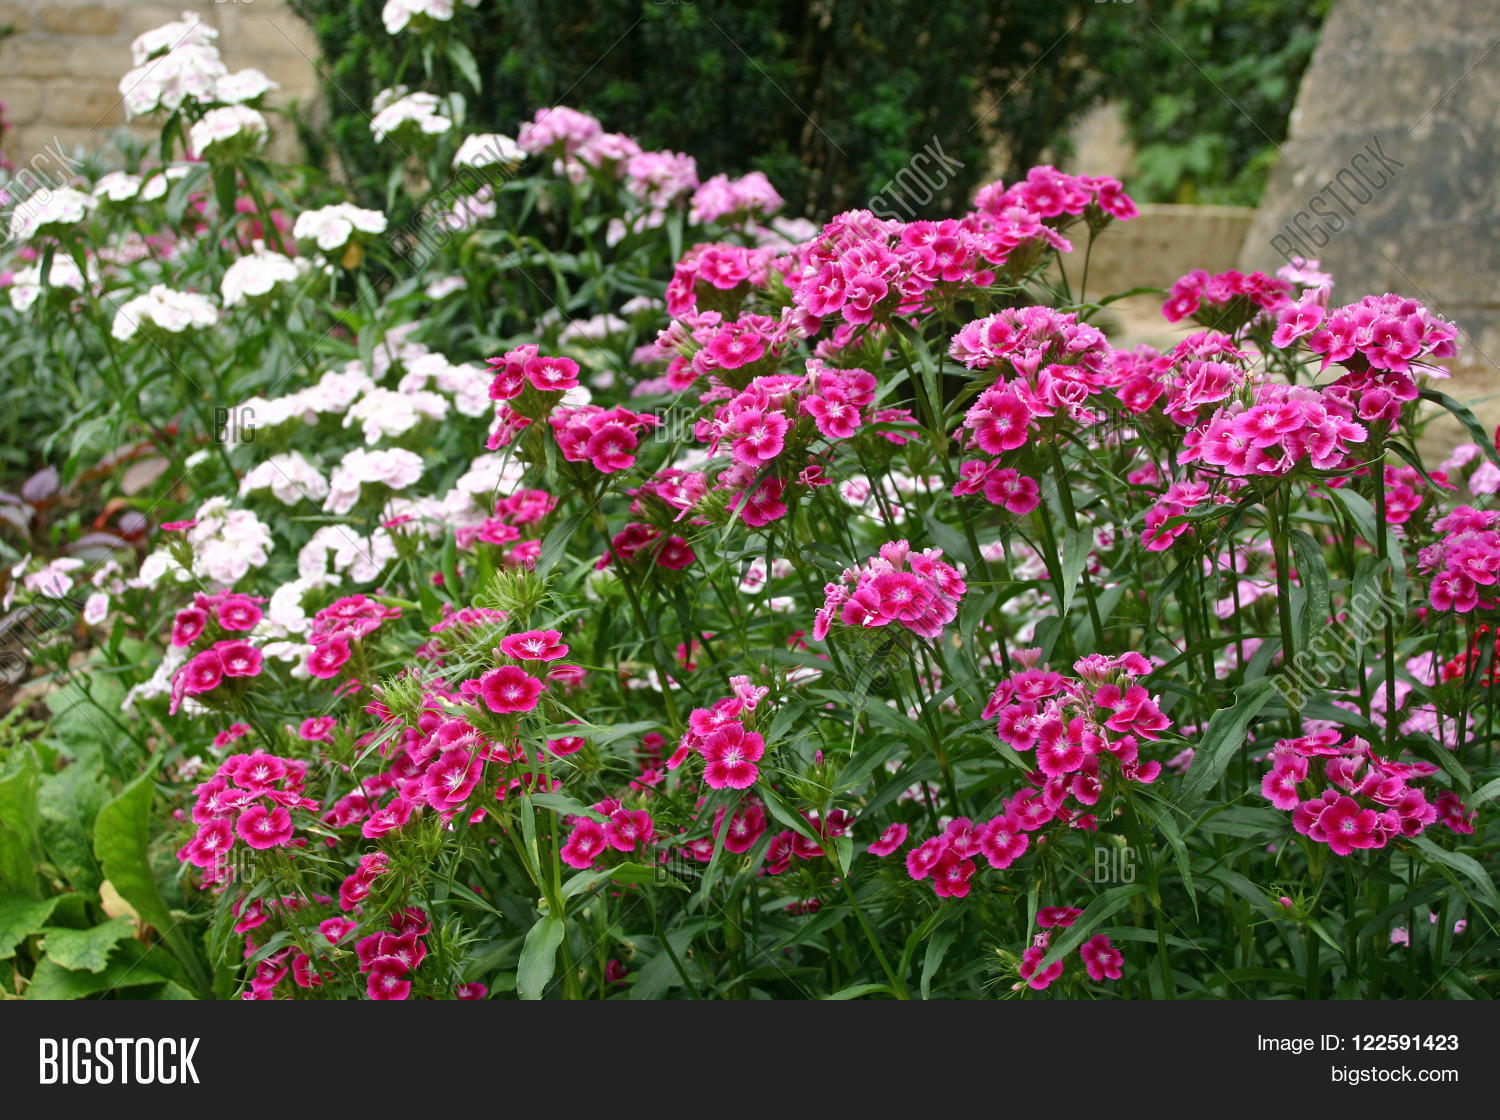 Flower Bed Filled Deep Image Photo Free Trial Bigstock